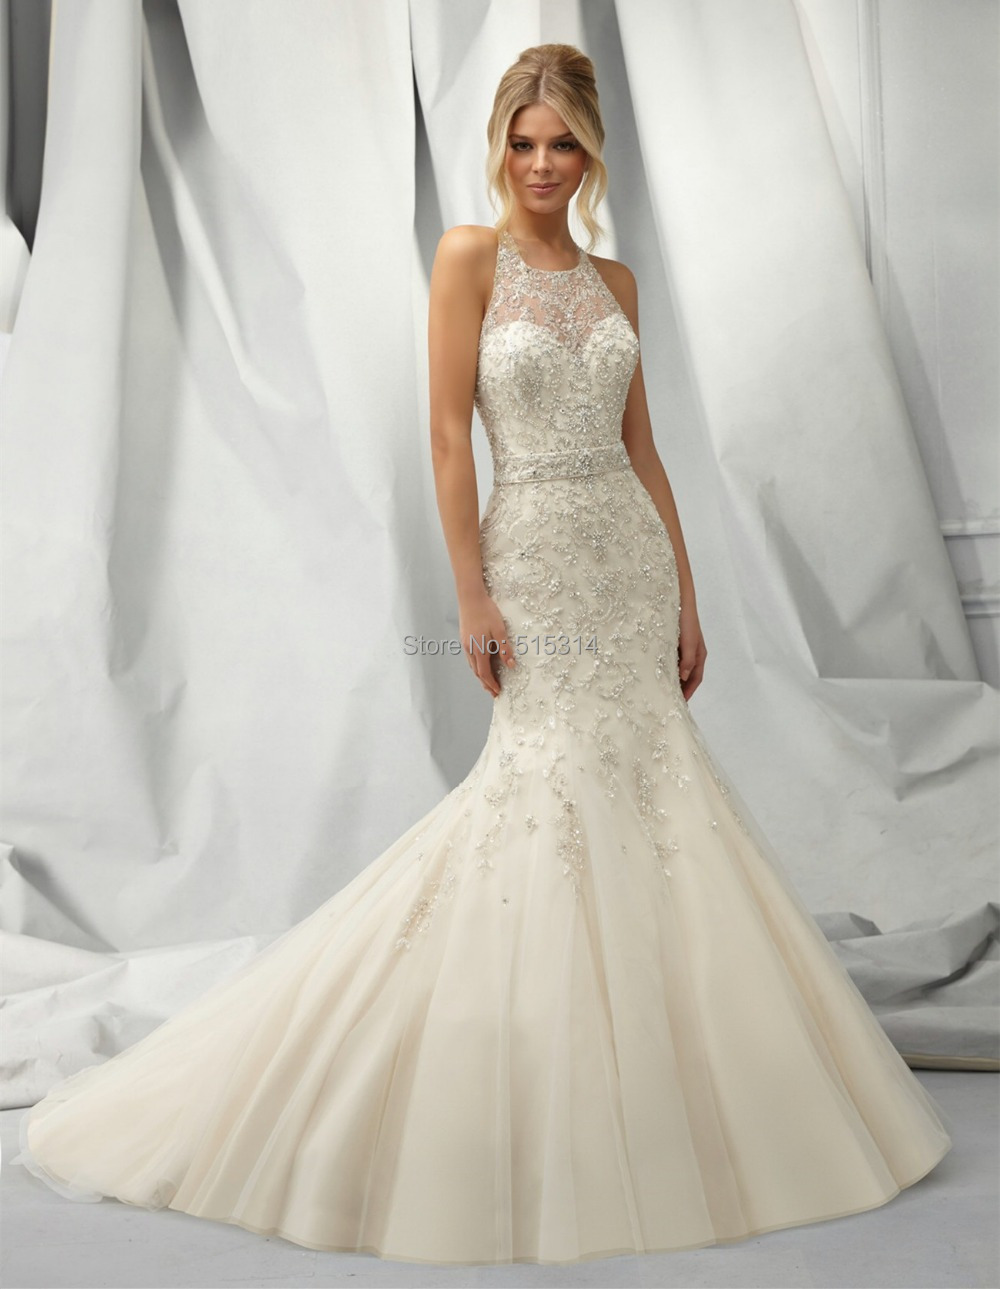 wedding dresses mermaid wedding dress mermaid Wedding dresses mermaid using creative and smart ideas 15